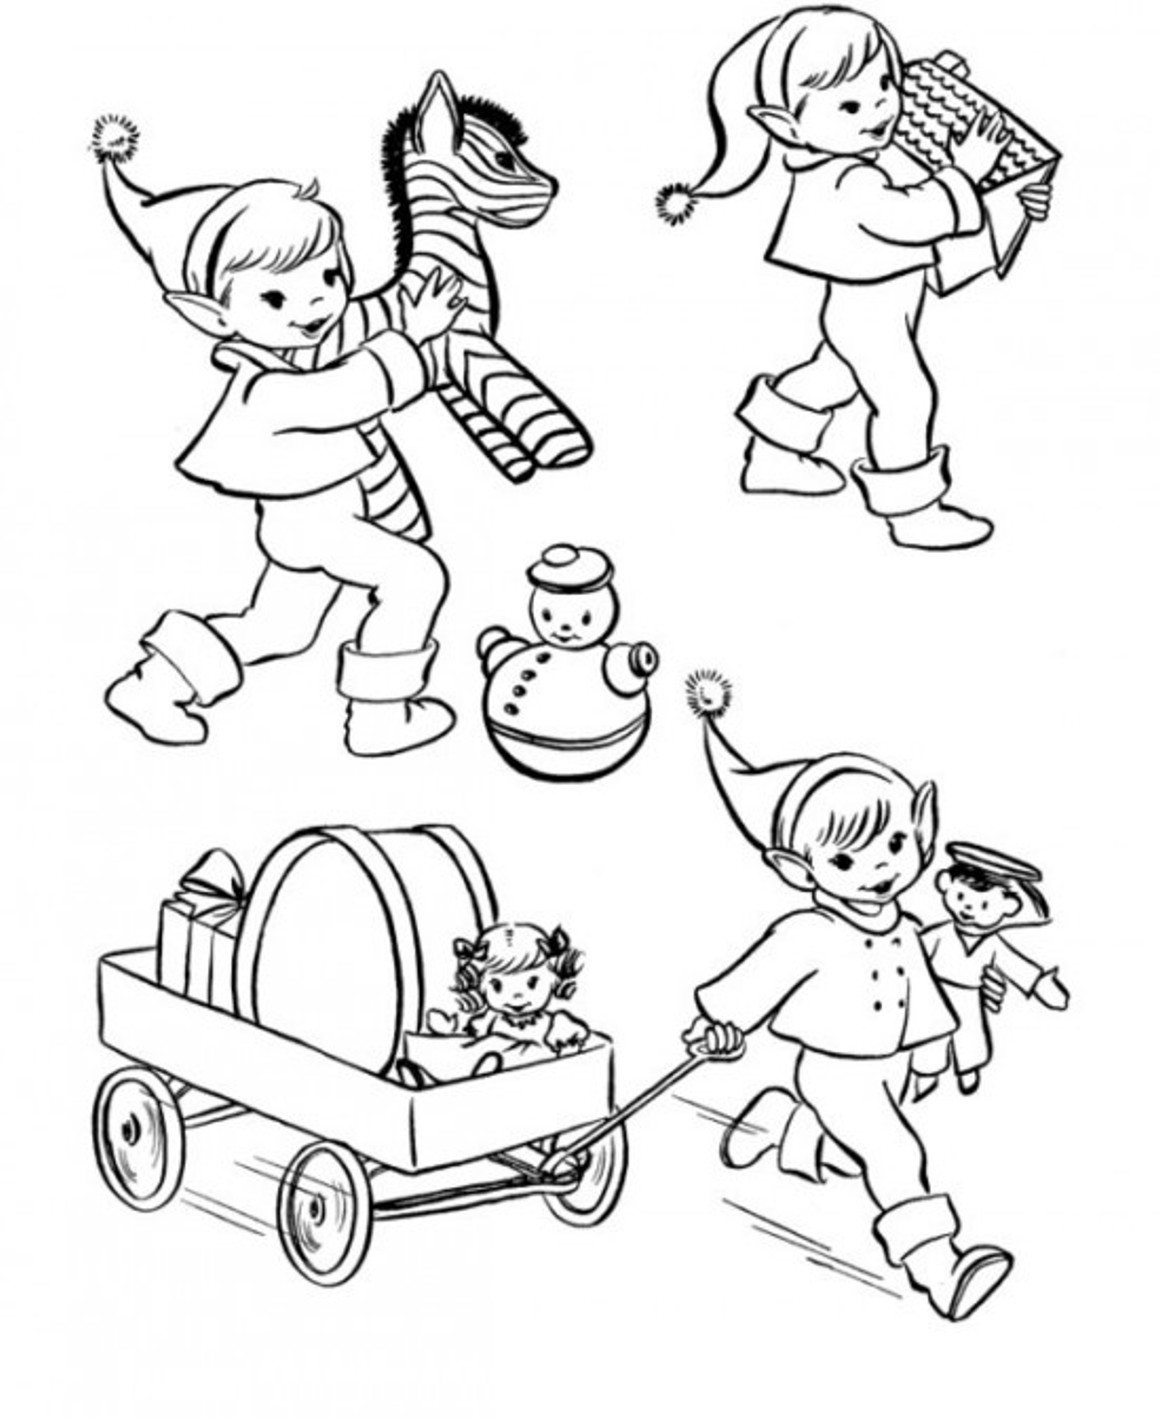 Christmas Elf Coloring Pages Christmas Elf Coloring Pages Printable Christmas Coloring Pages Of